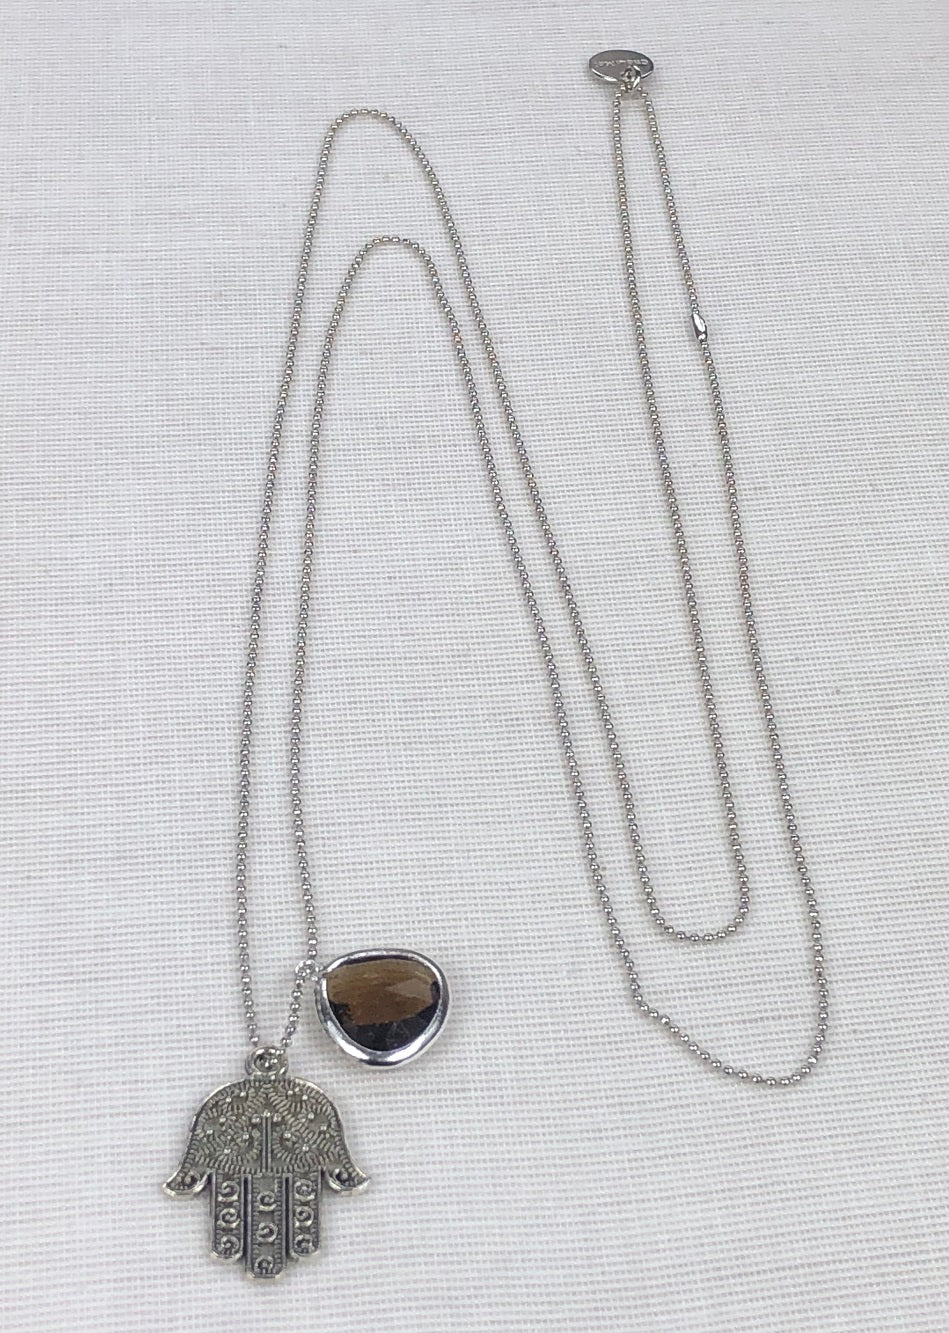 Long Necklace with HAND OF FATIMA pendant